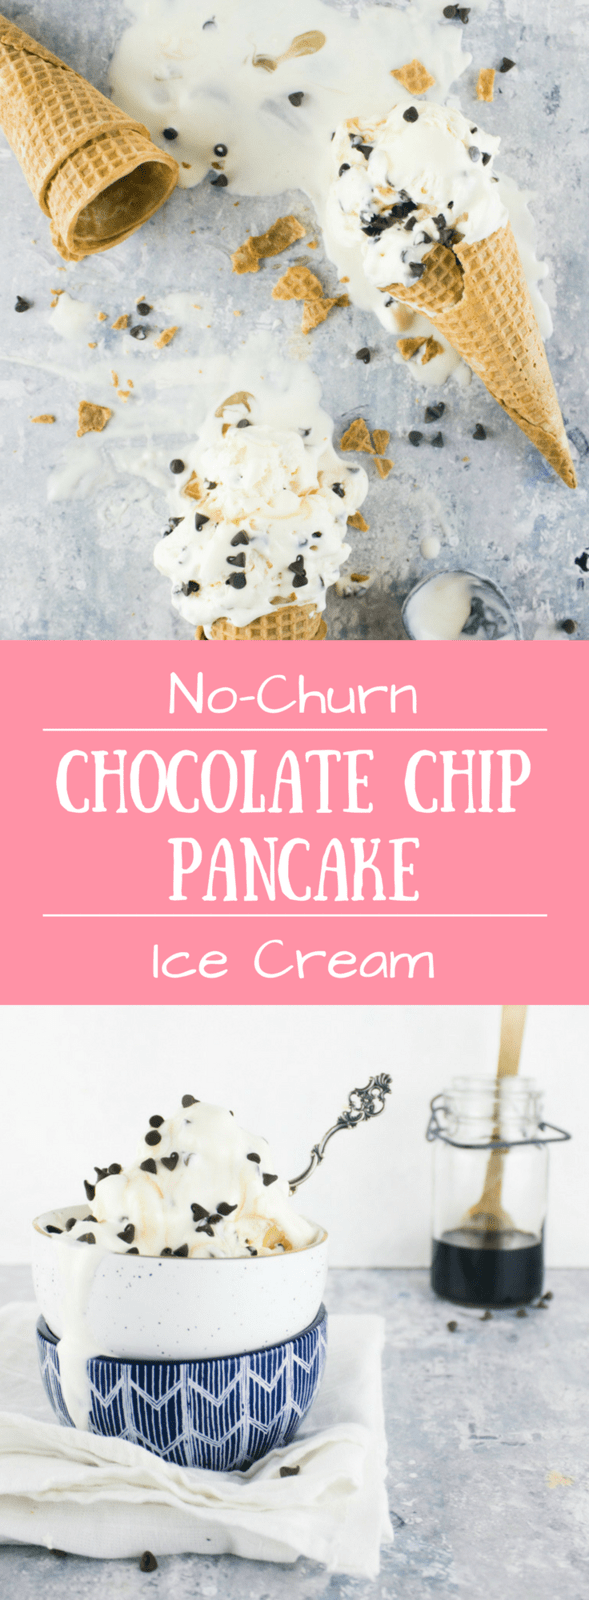 Breakfast for dinner is going to get a run for it's money with this breakfast for dessert inspired no-churn chocolate chip pancake ice cream!